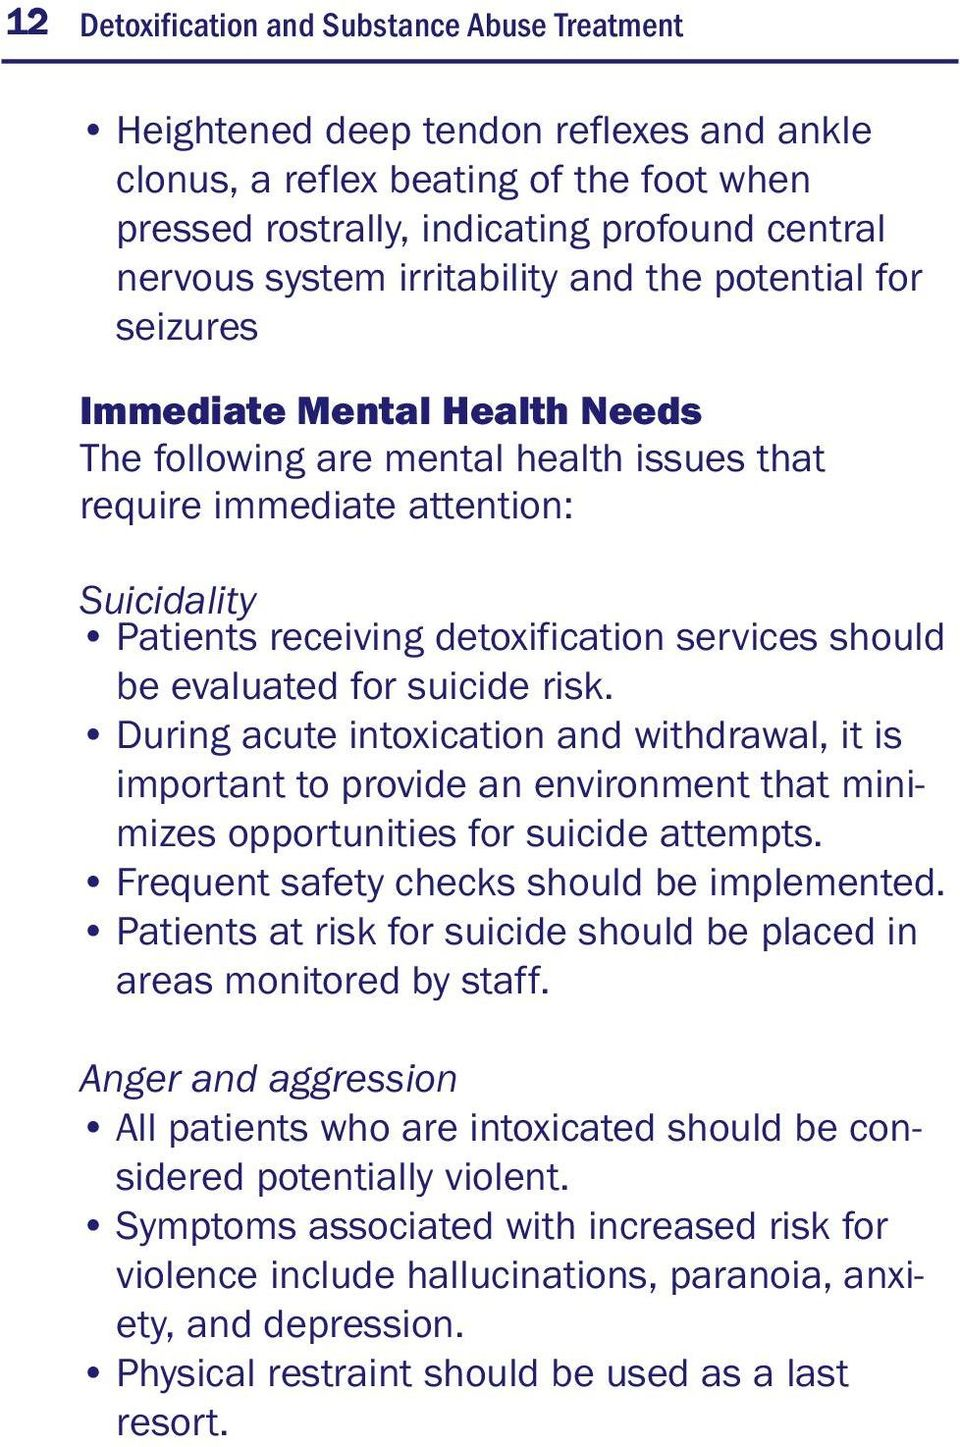 services should be evaluated for suicide risk. During acute intoxication and withdrawal, it is important to provide an environment that minimizes opportunities for suicide attempts.